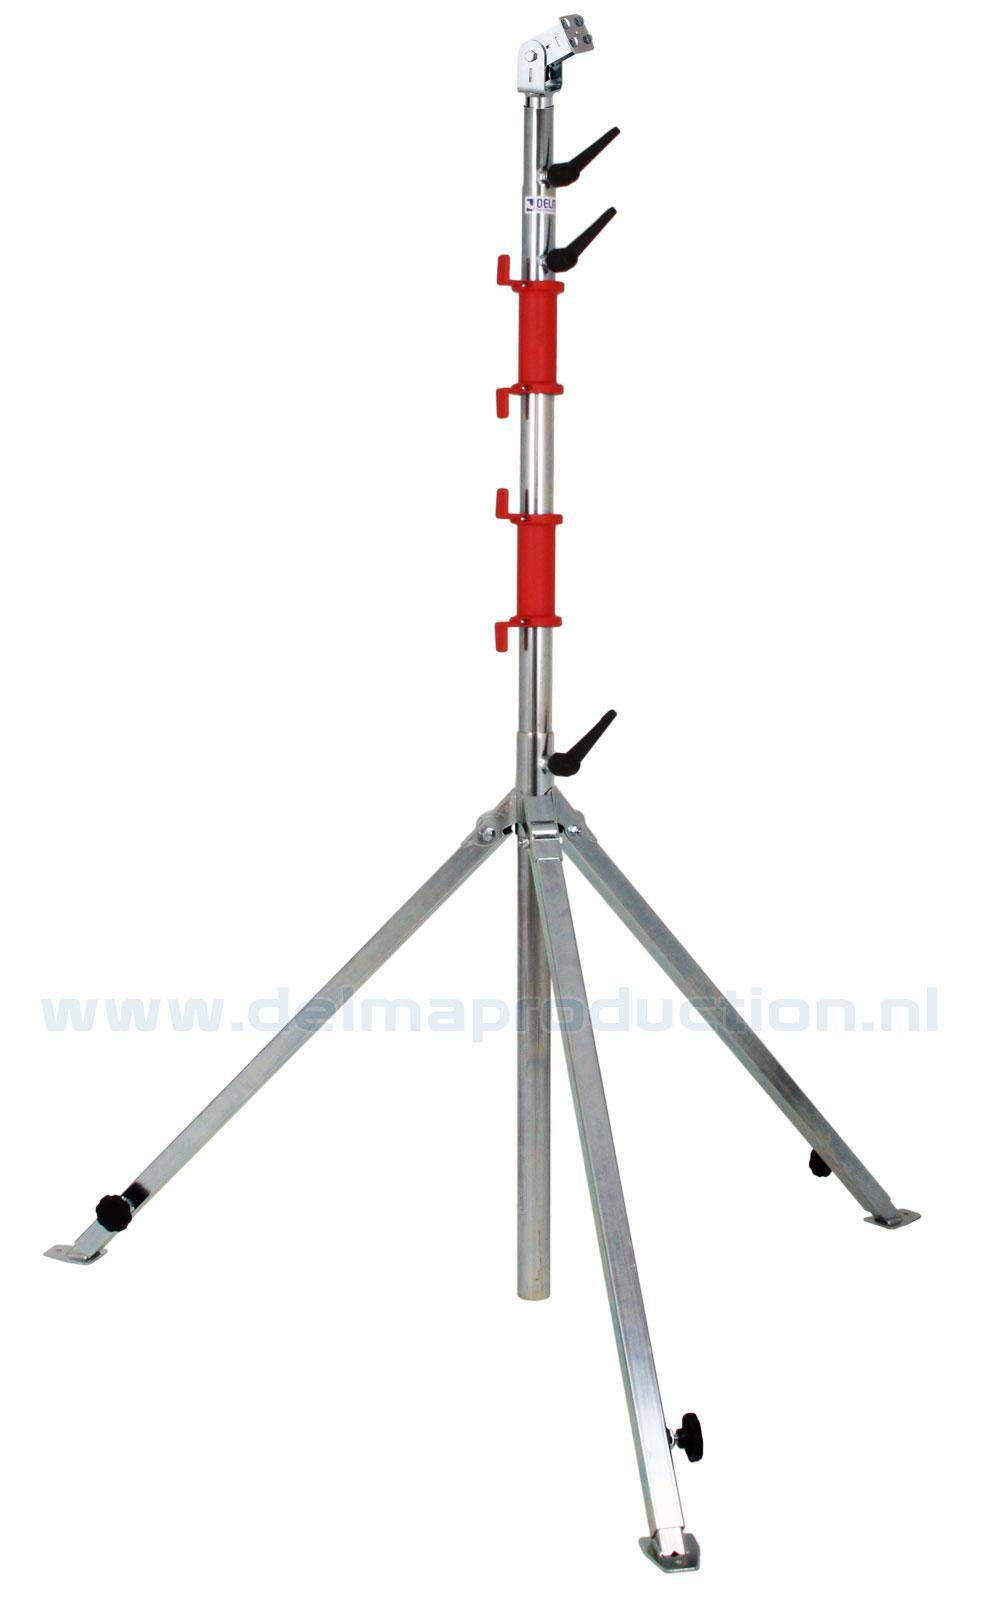 Tripod worklight stand 4-part, adjustable undercarriage, quick release system